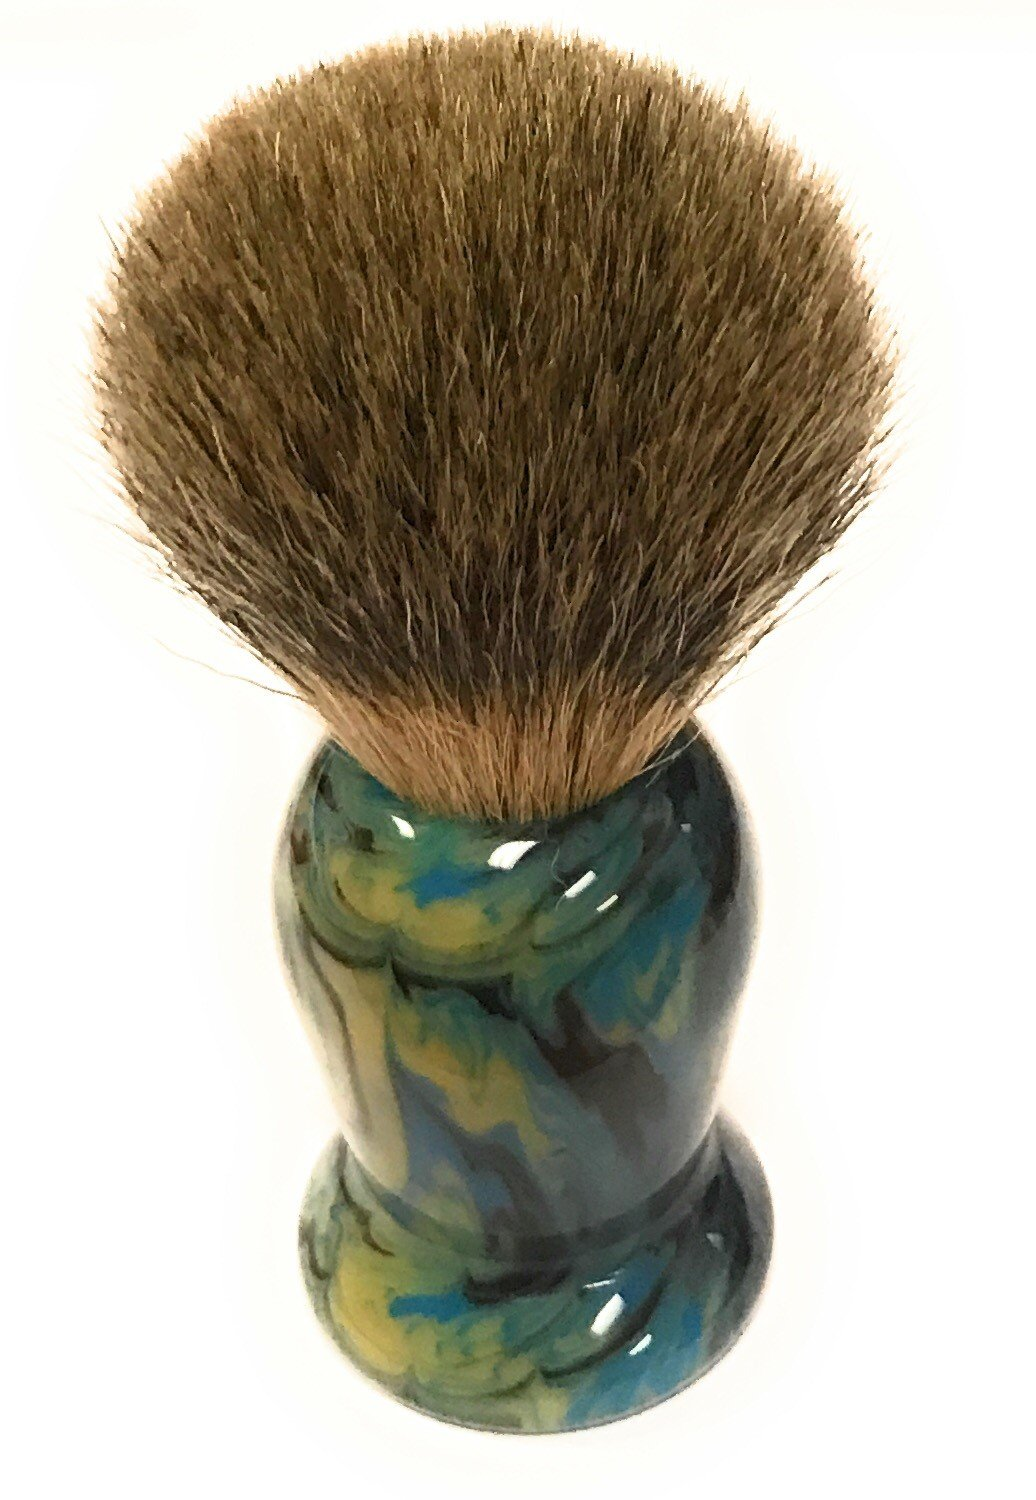 GBS Natural Badger Shaving Brush - Colorful Modern Handle Blue/Green Hues. 21mm knot Wet Shave Brush Includes Brush Stand To Ensure Proper Storage After Lathering w/Any Shaving Cream or Soap